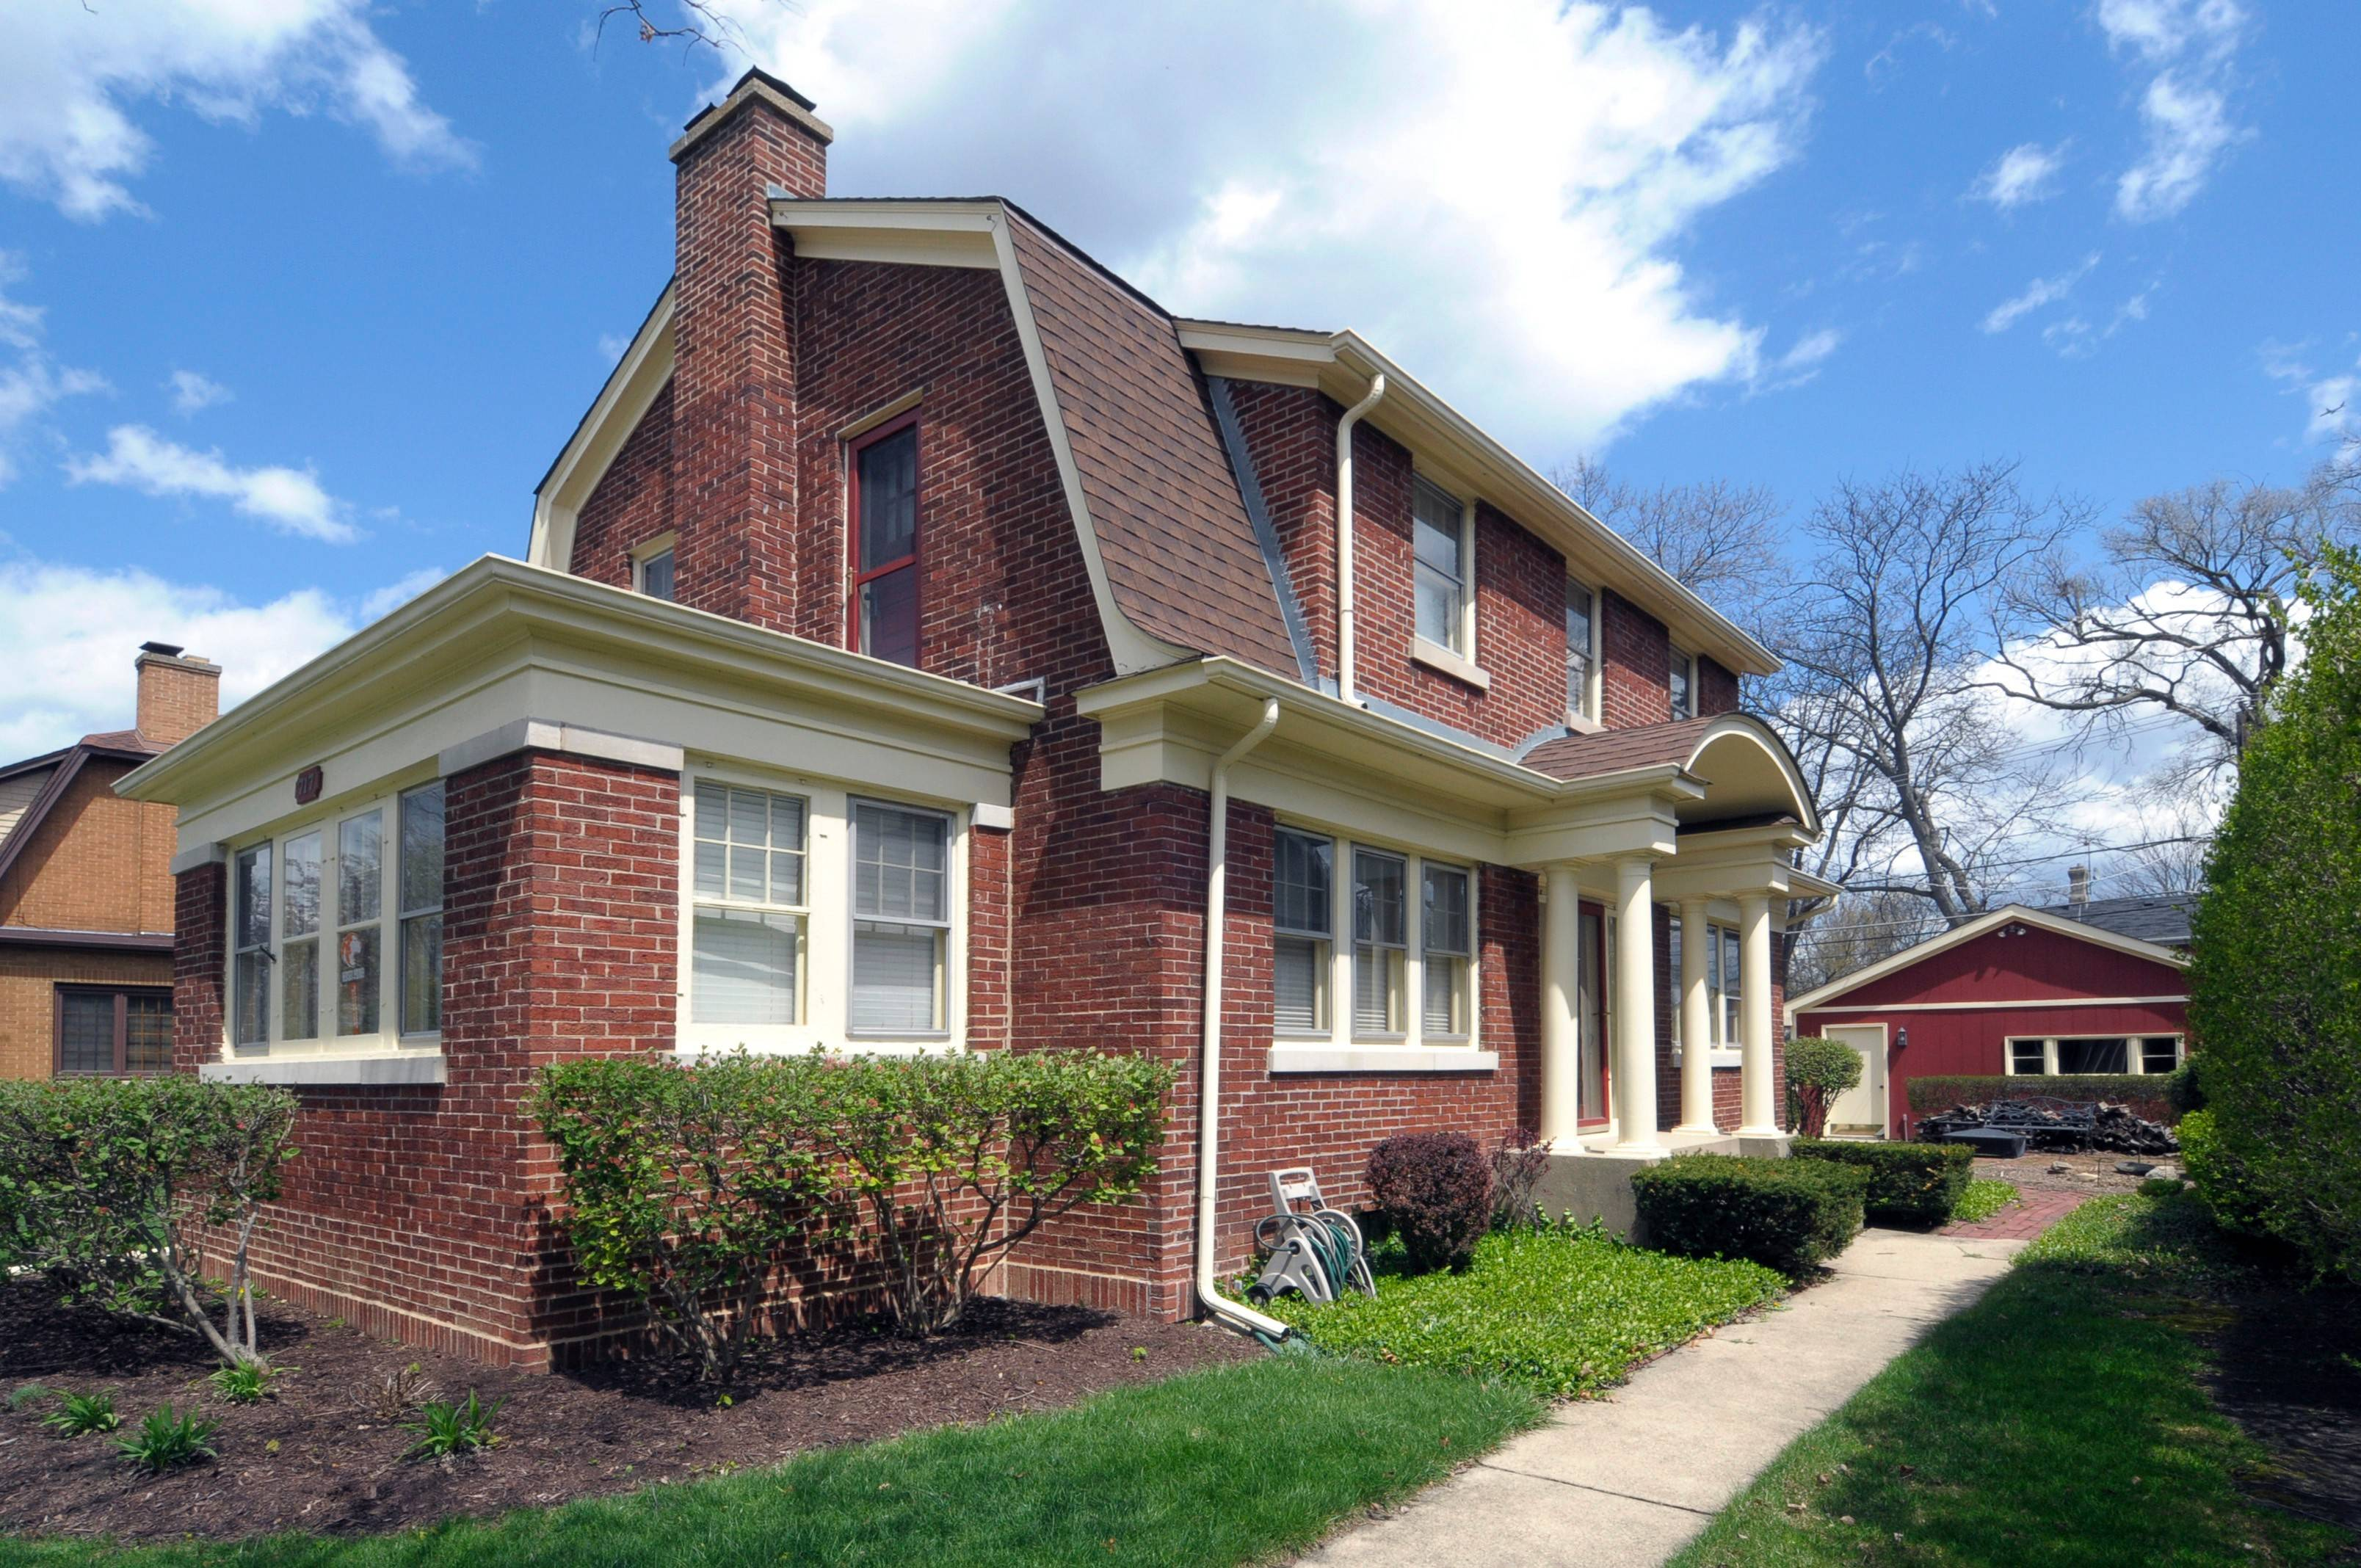 The Dutch Colonial brick home has modern updates and is in downtown Arlington Heights.